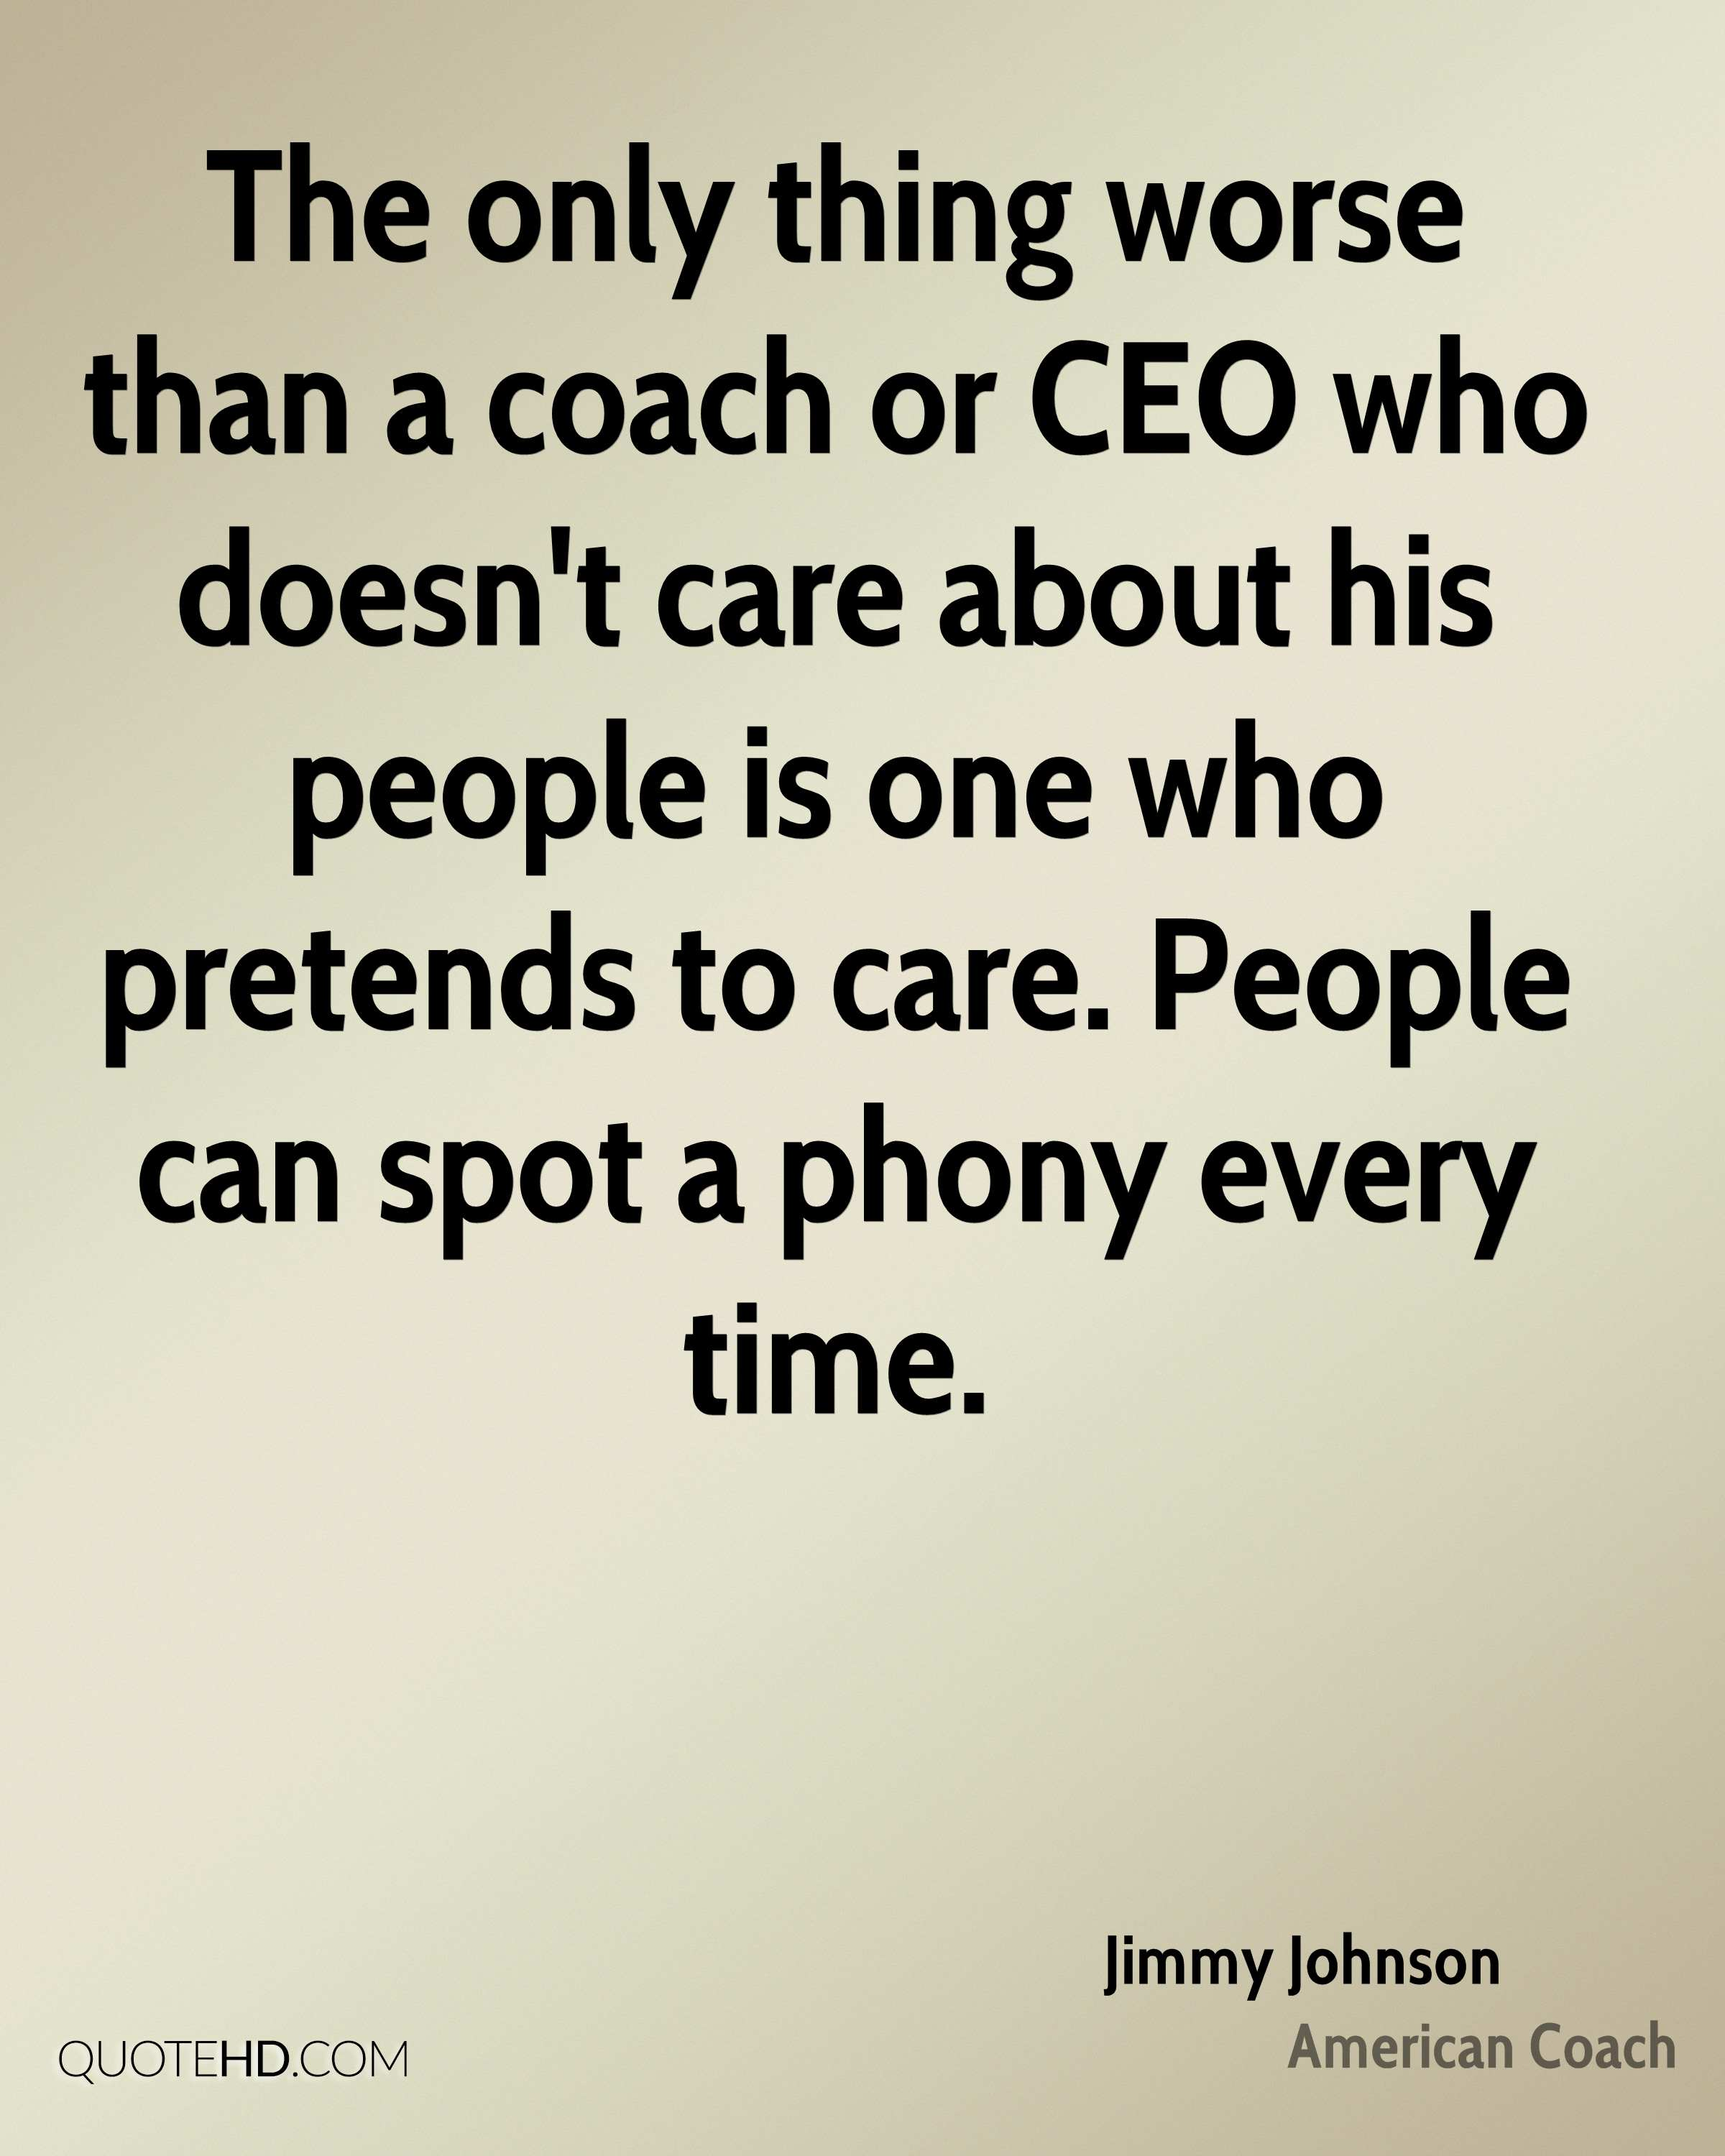 The only thing worse than a coach or CEO who doesn't care about his people is one who pretends to care. People can spot a phony every time.